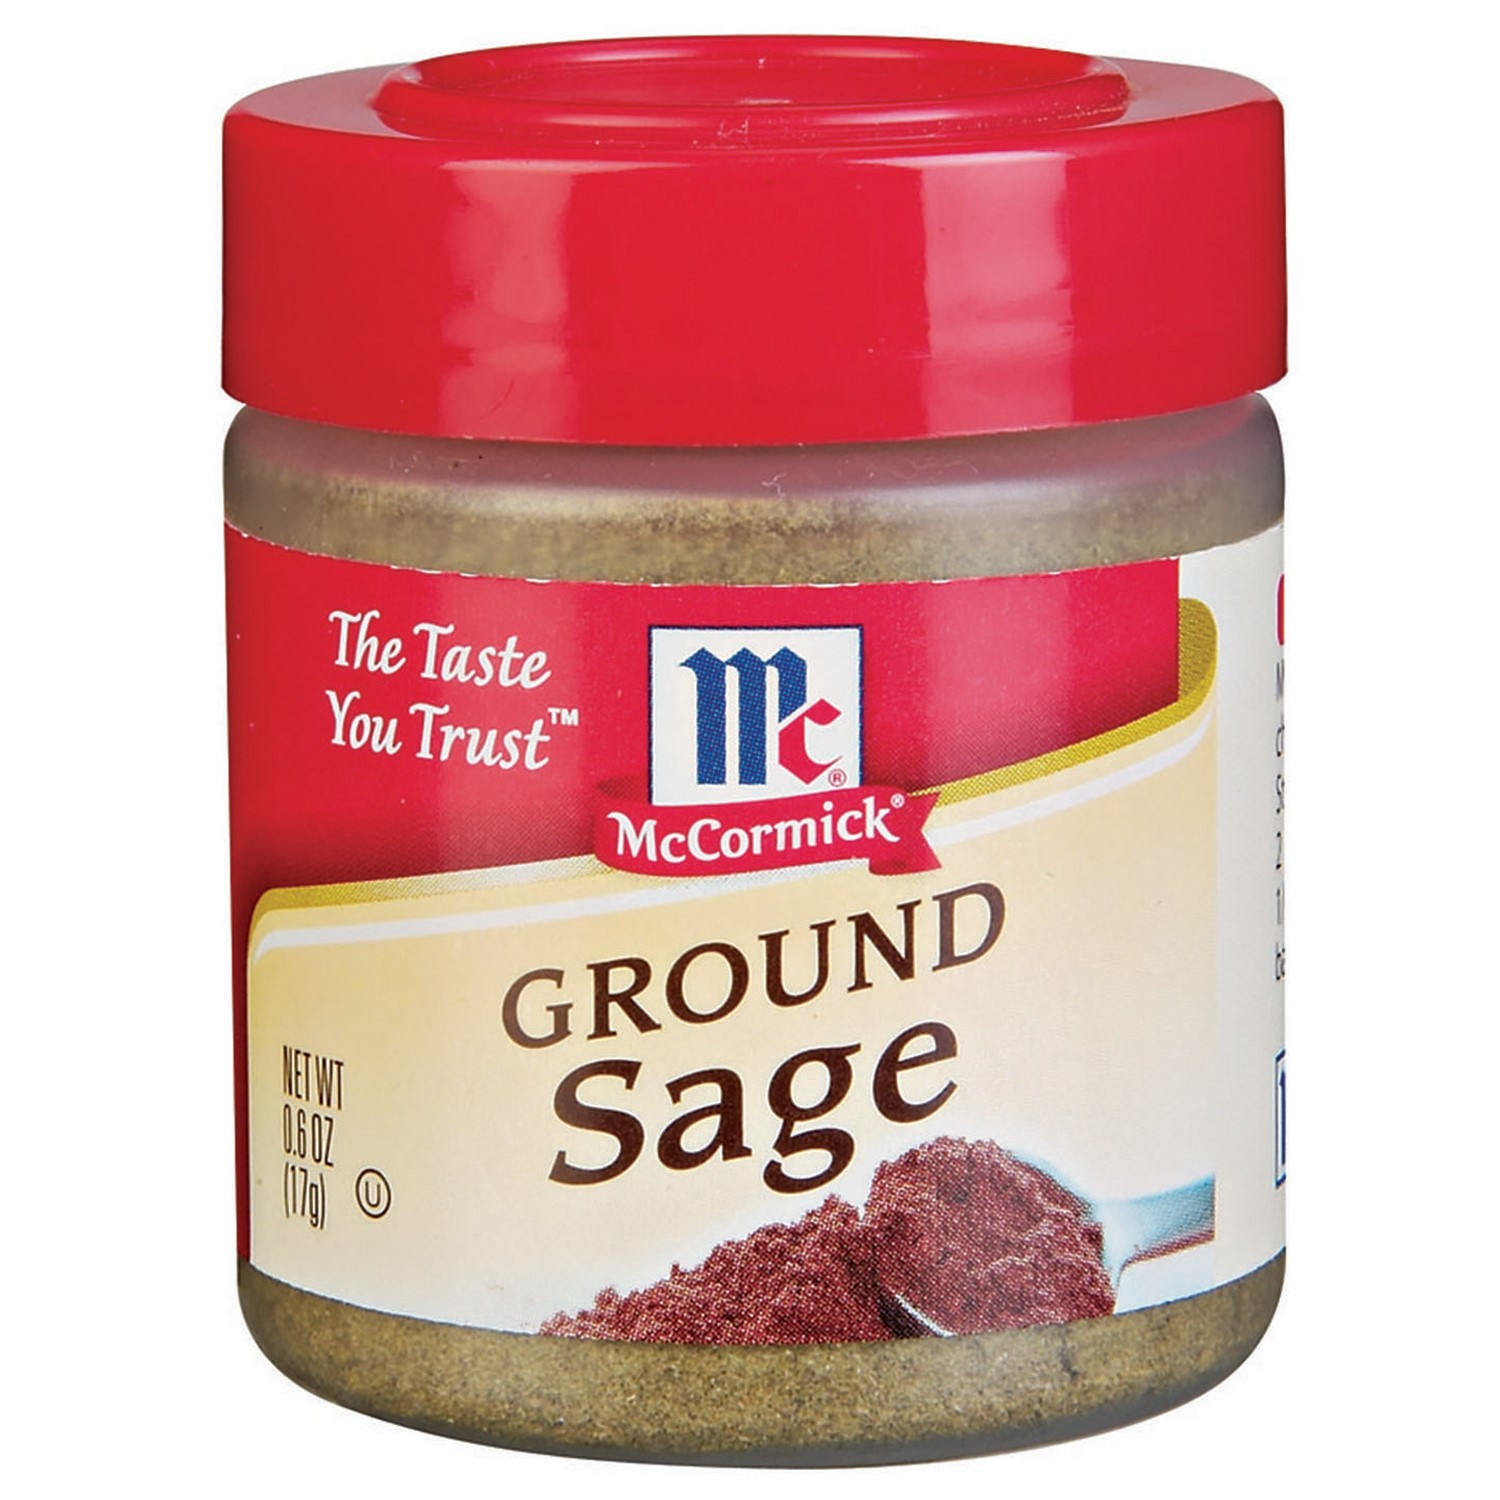 McCormick Specialty Herbs And Spices Ground Sage, 0.6 Oz by Mccormick